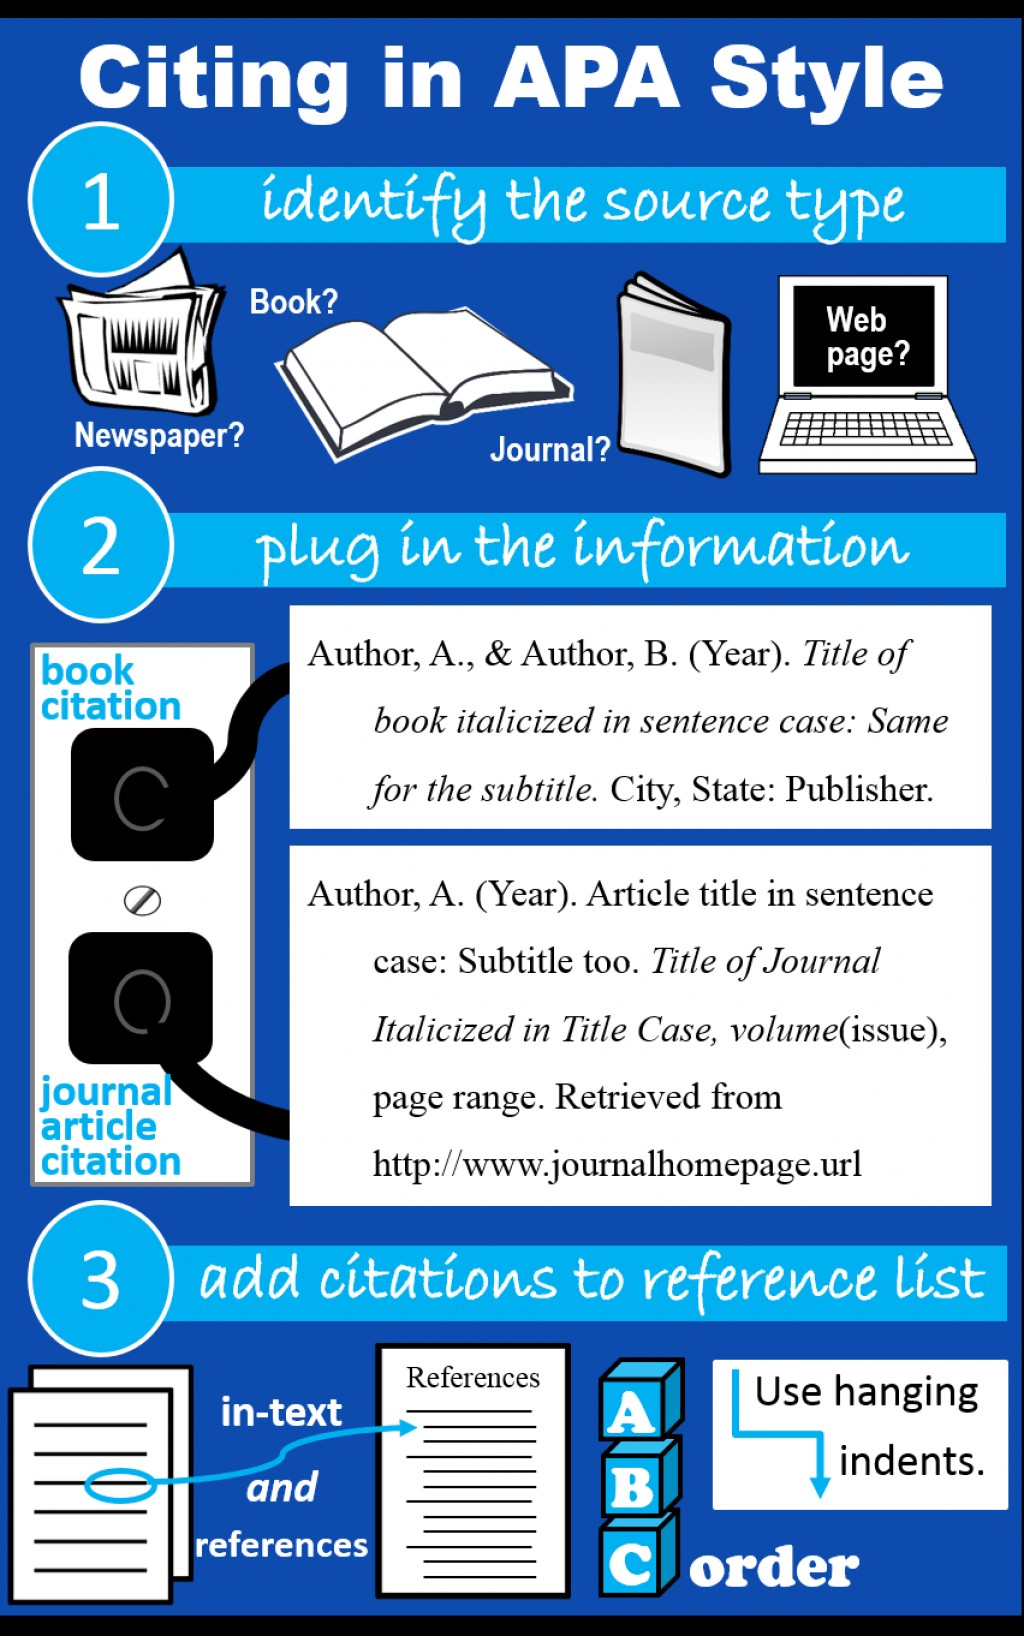 018 Citing Sources In Research Paper Apa Infographic Astounding Paragraph Large